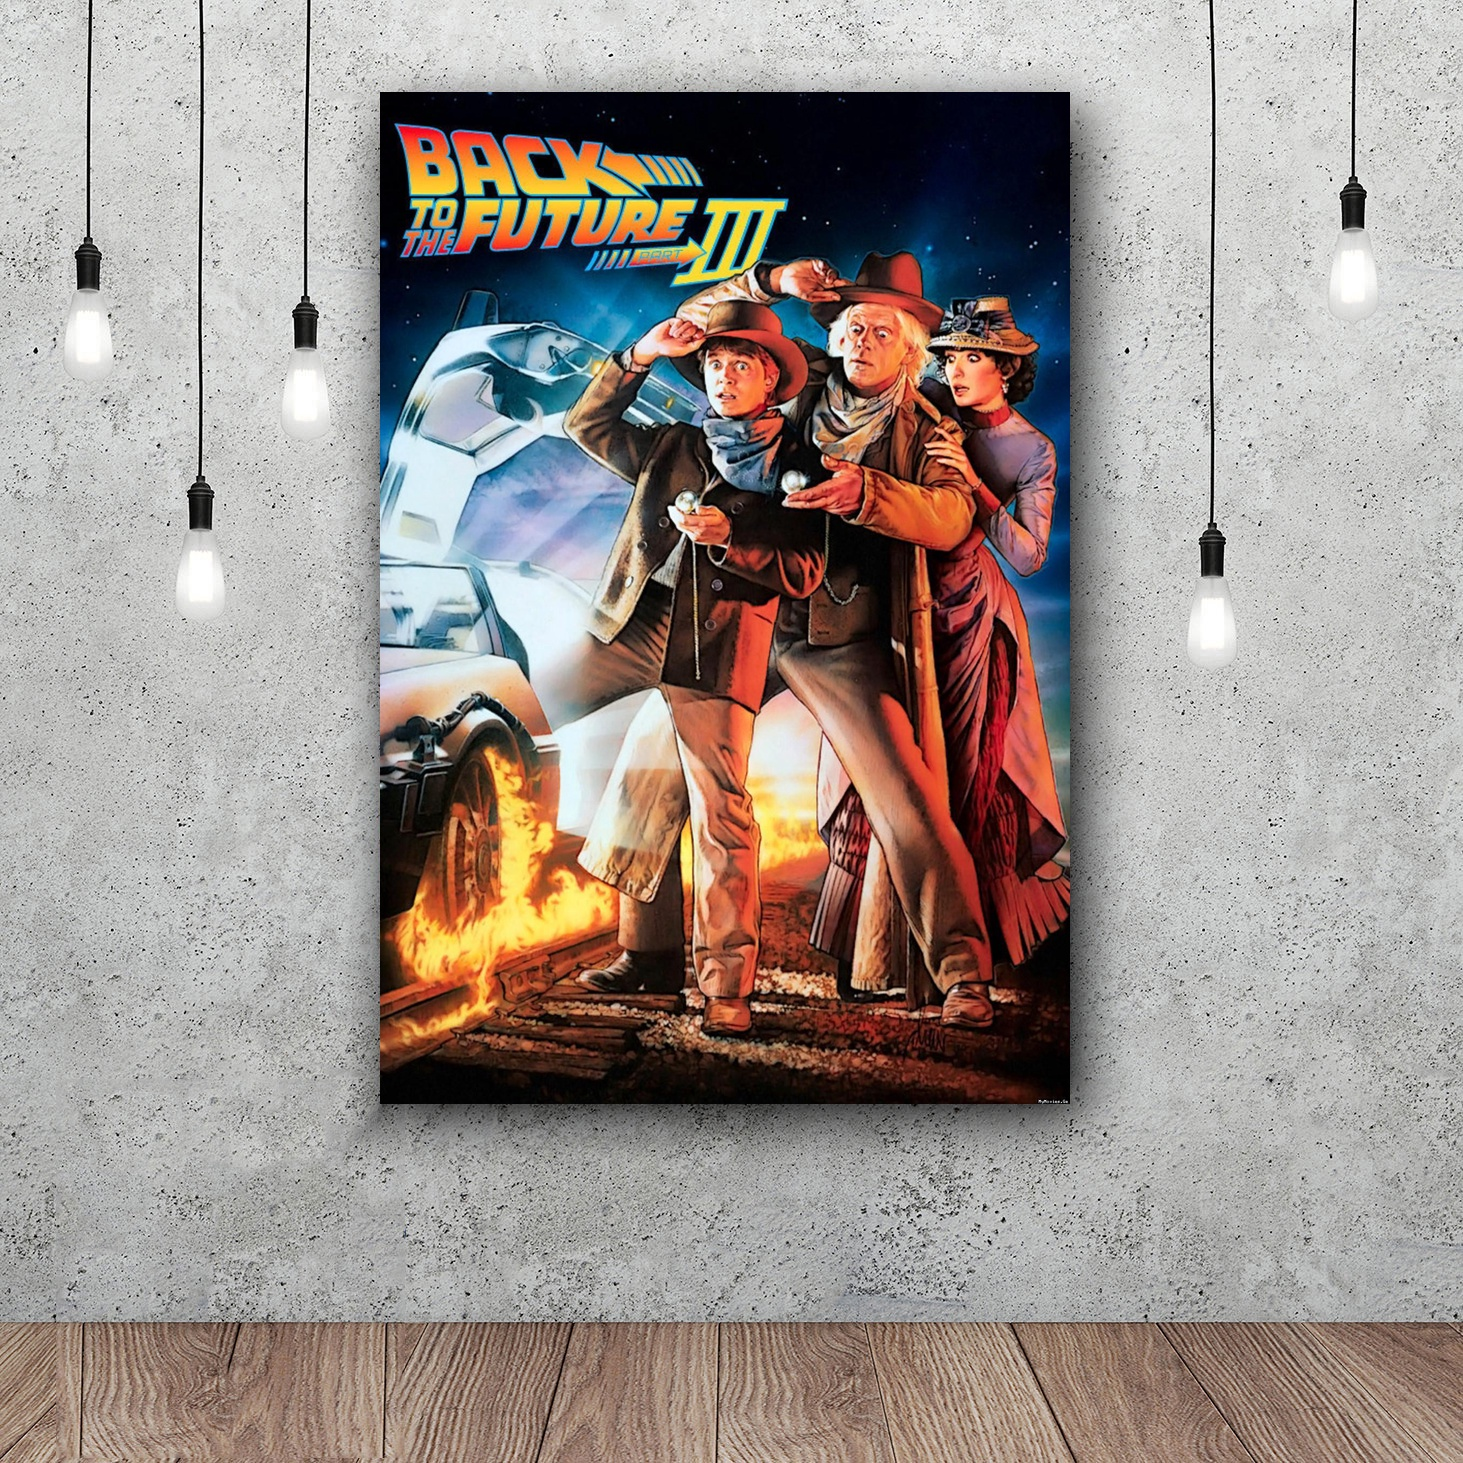 Back To The Future Art Silk Poster Home Decor 12x18 24x36inch